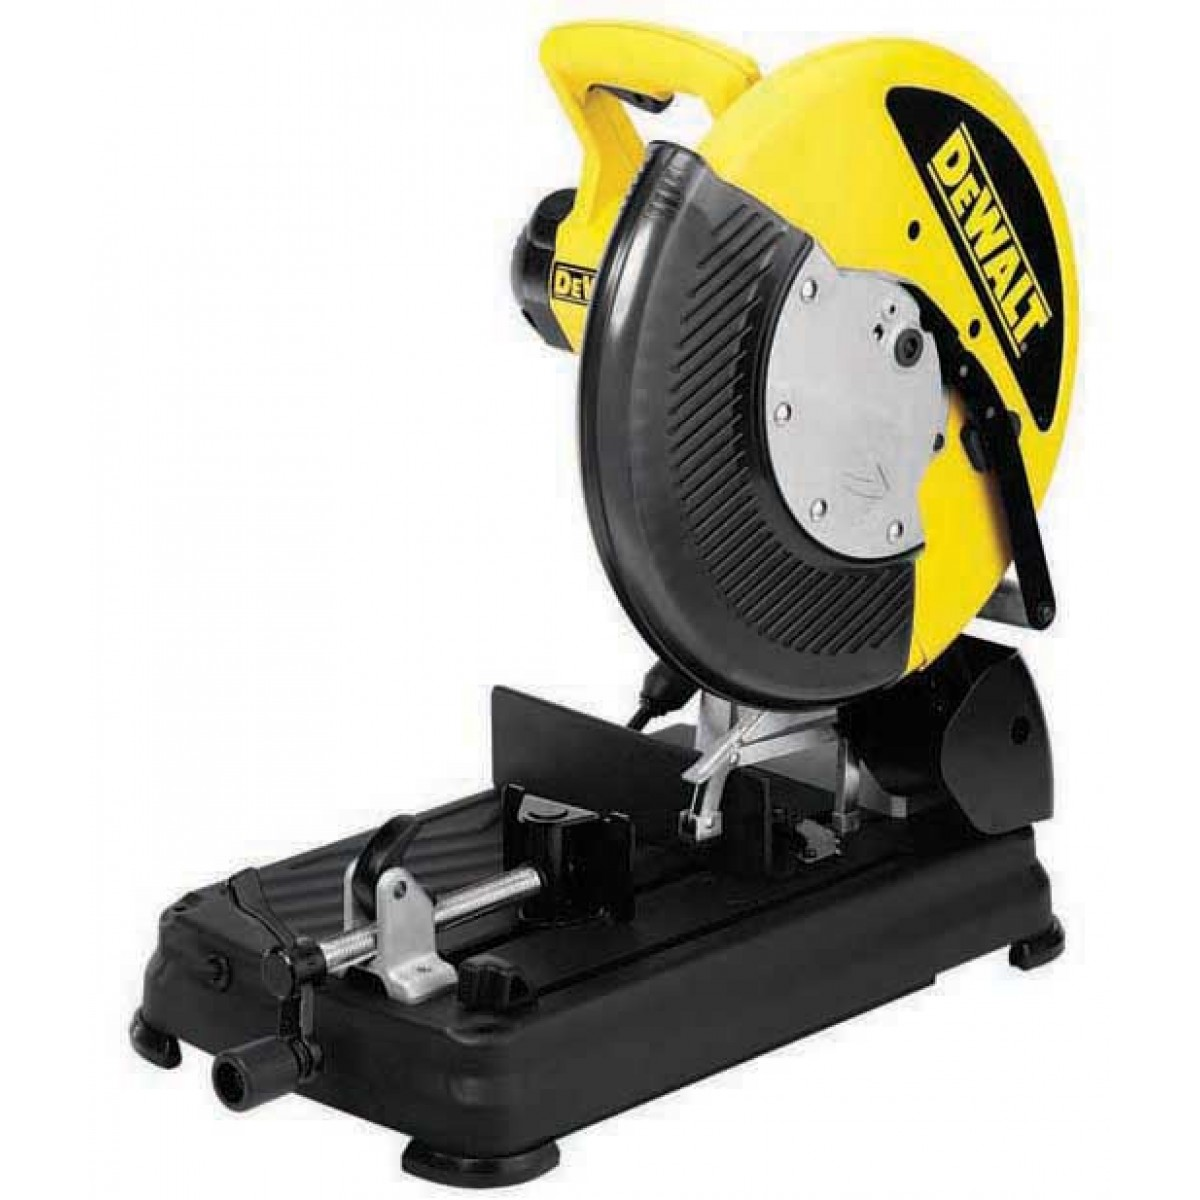 ... DW872L-XW 110v Portable cut off saw - 355 mm blade - Howe Tools UK